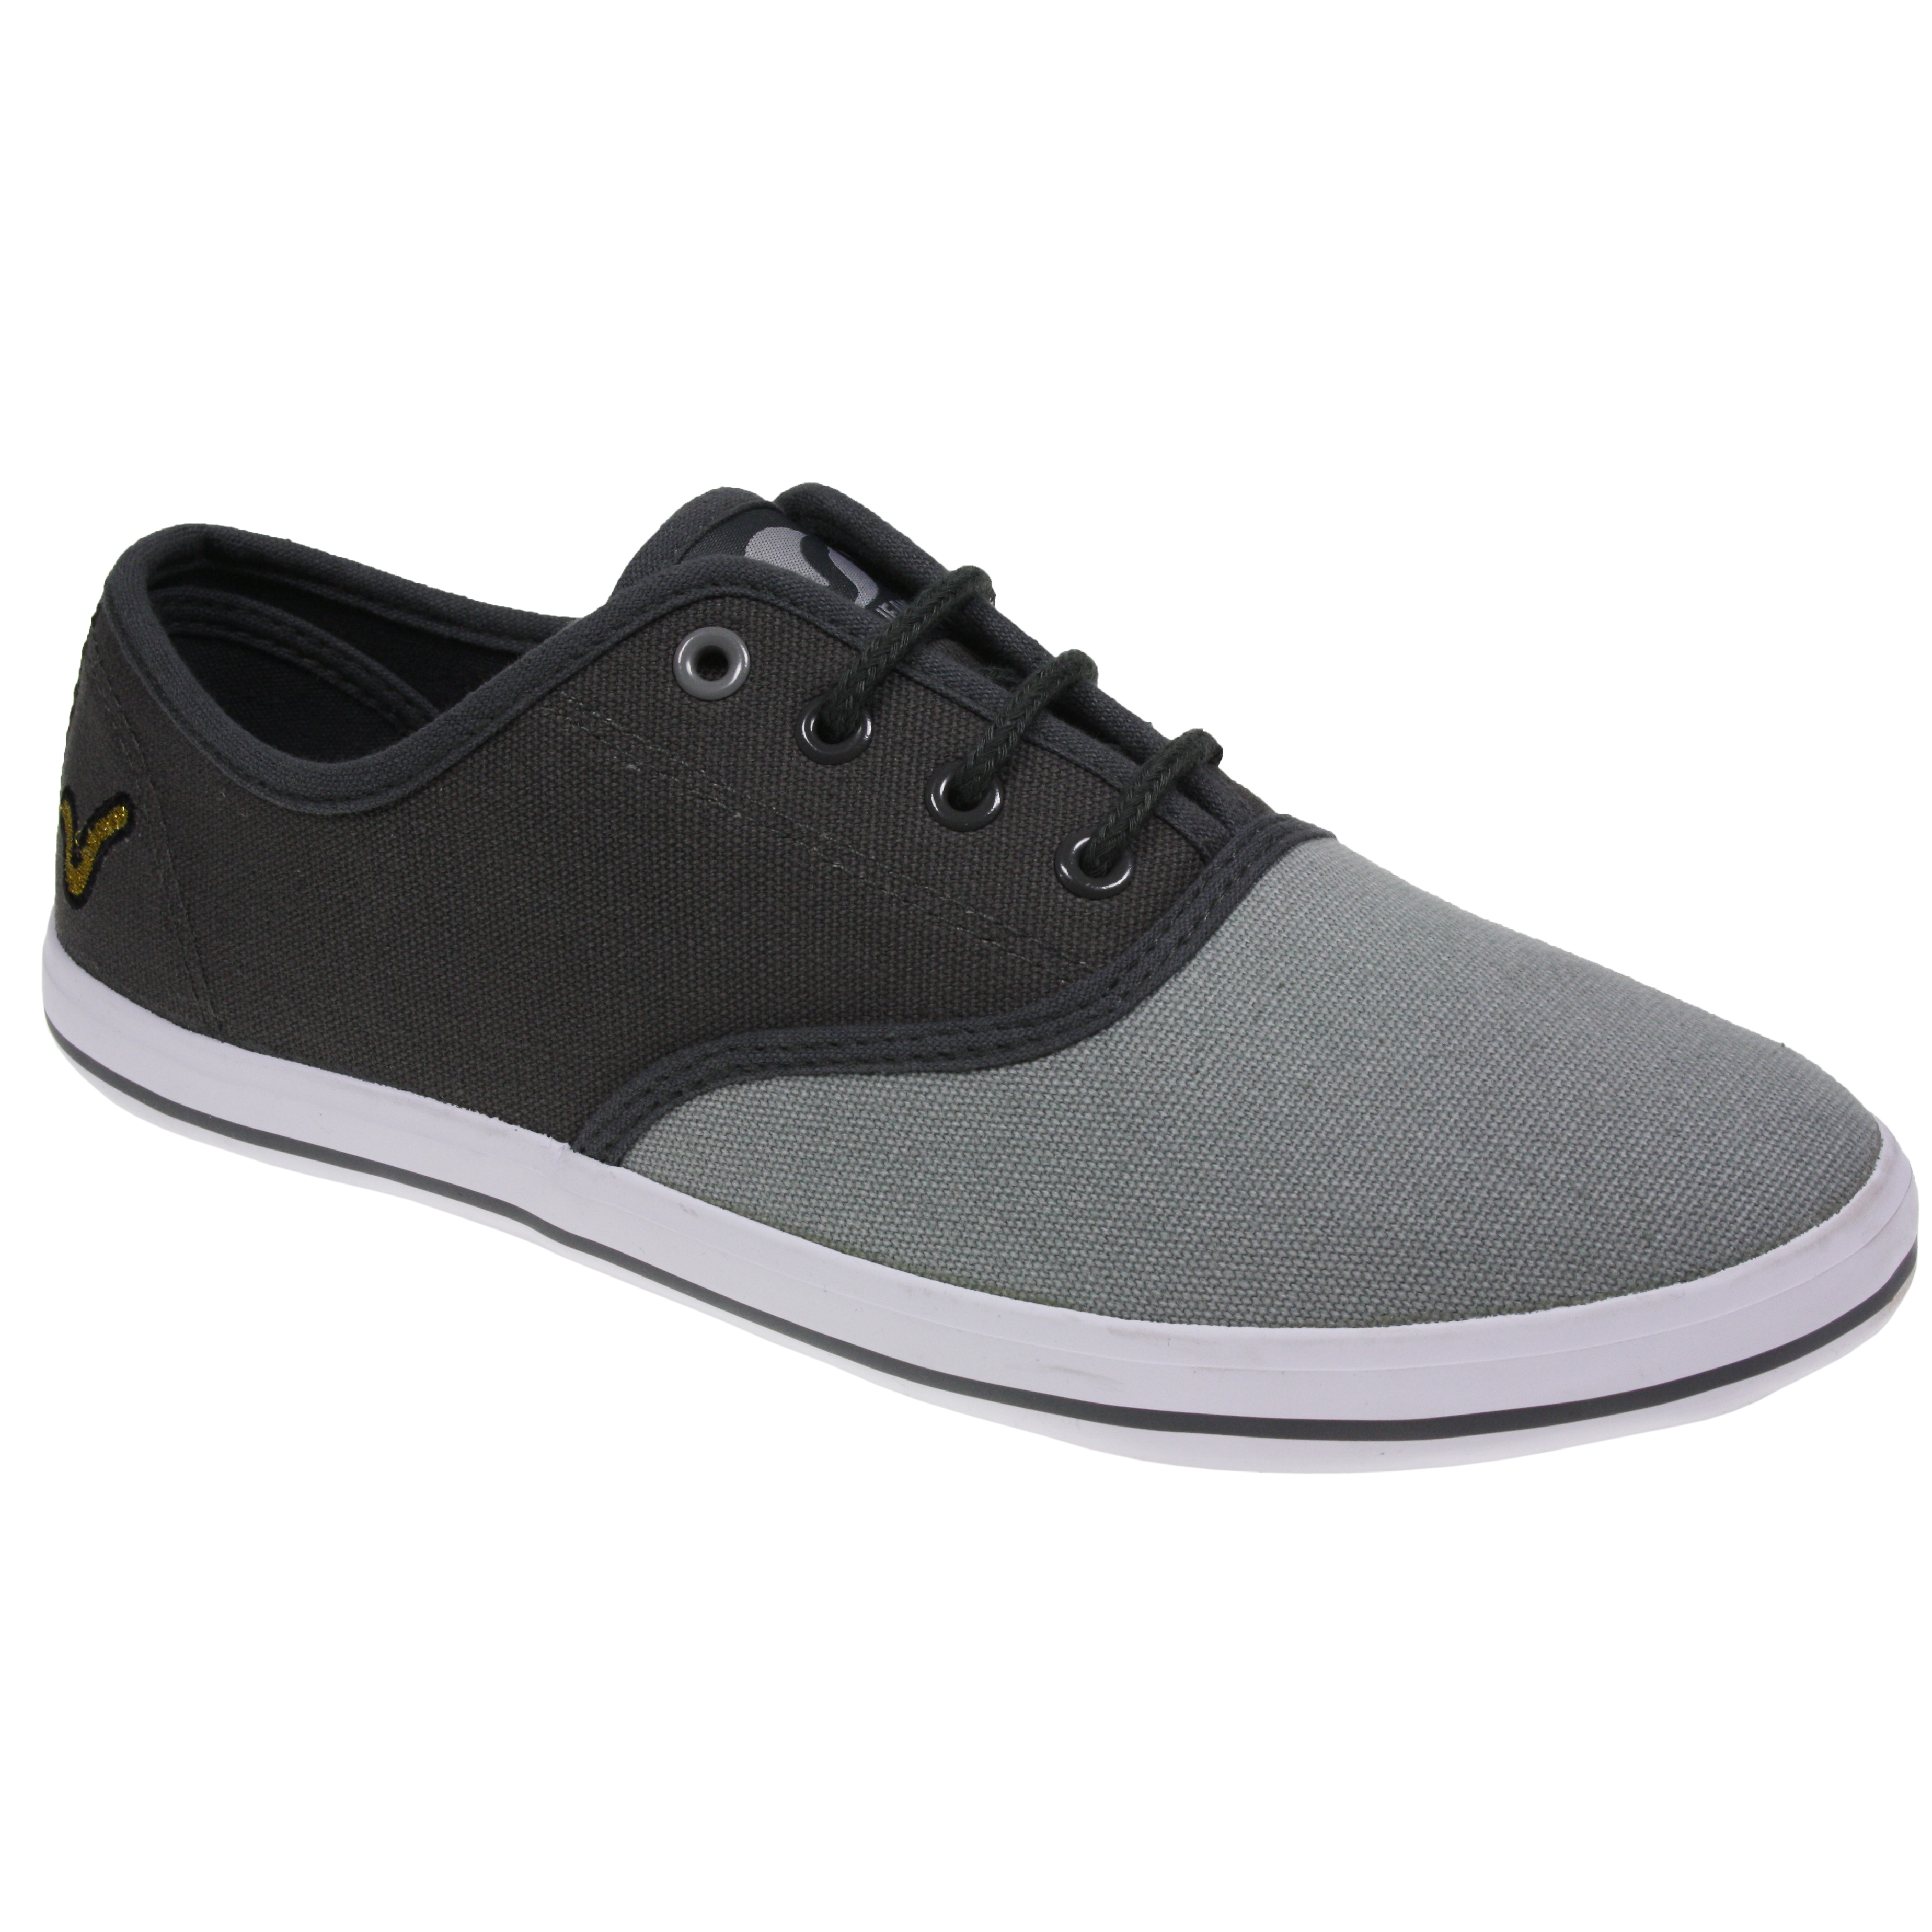 Find style and comfort with our range of canvas shoes and plimsolls for men from brands like Converse, Lacoste & Fred Perry. Shop online at JD Sports today for free delivery & next day shipping.